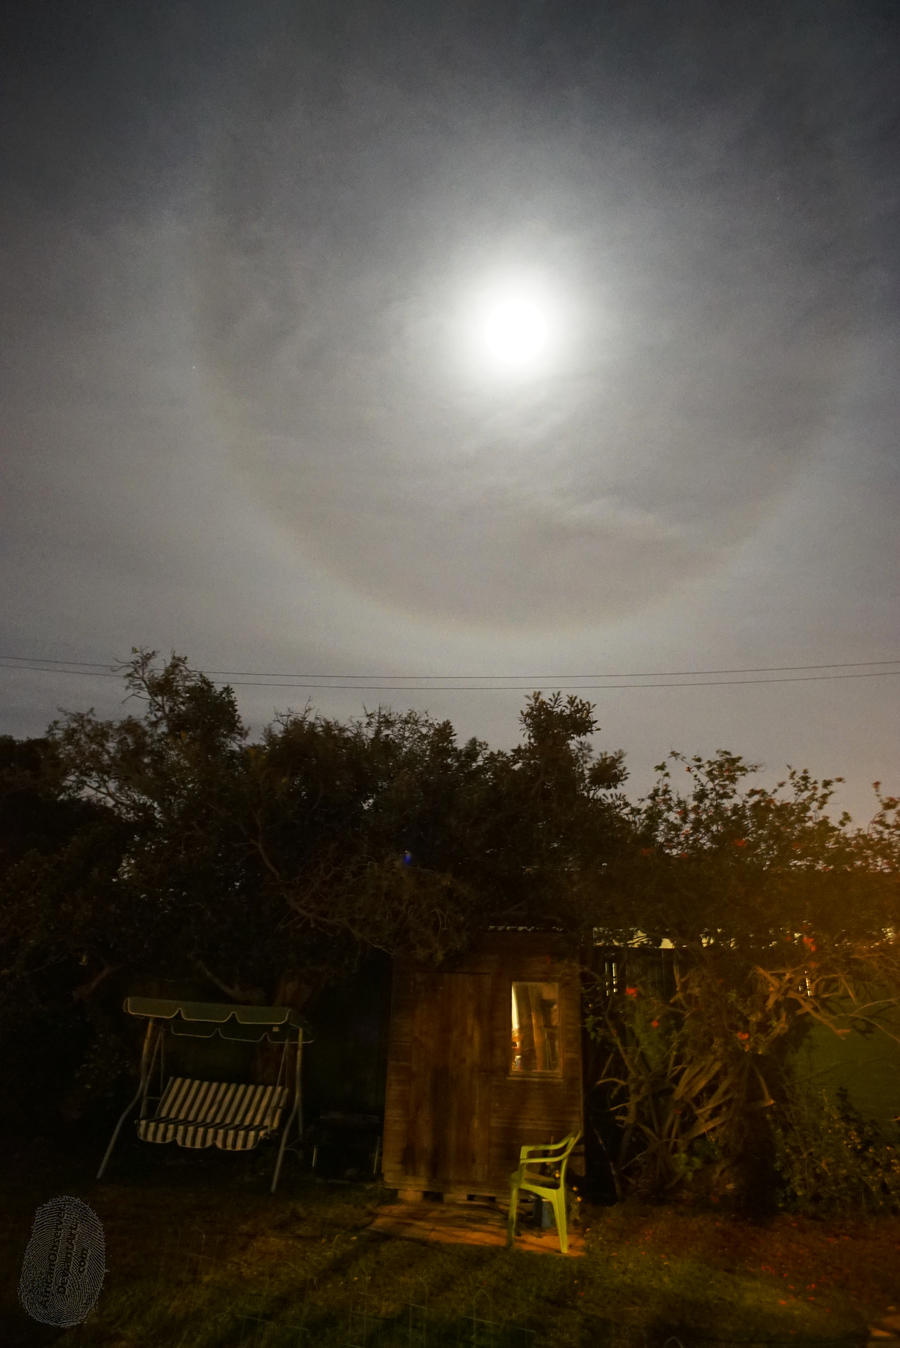 Moon halo and Shed